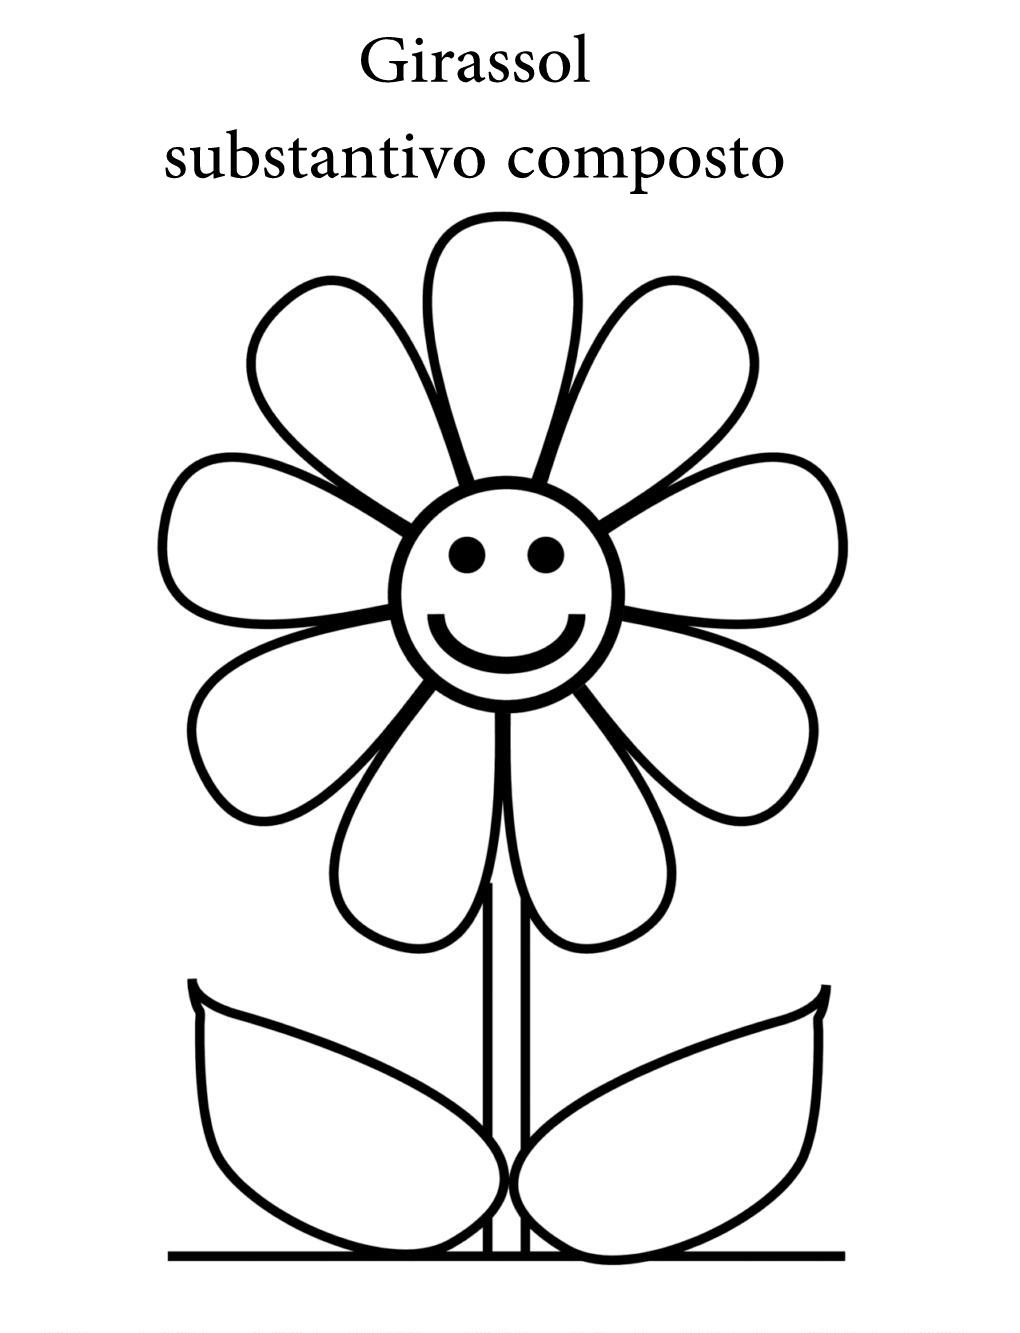 Coloring Pages Le Bloom : Substantivo